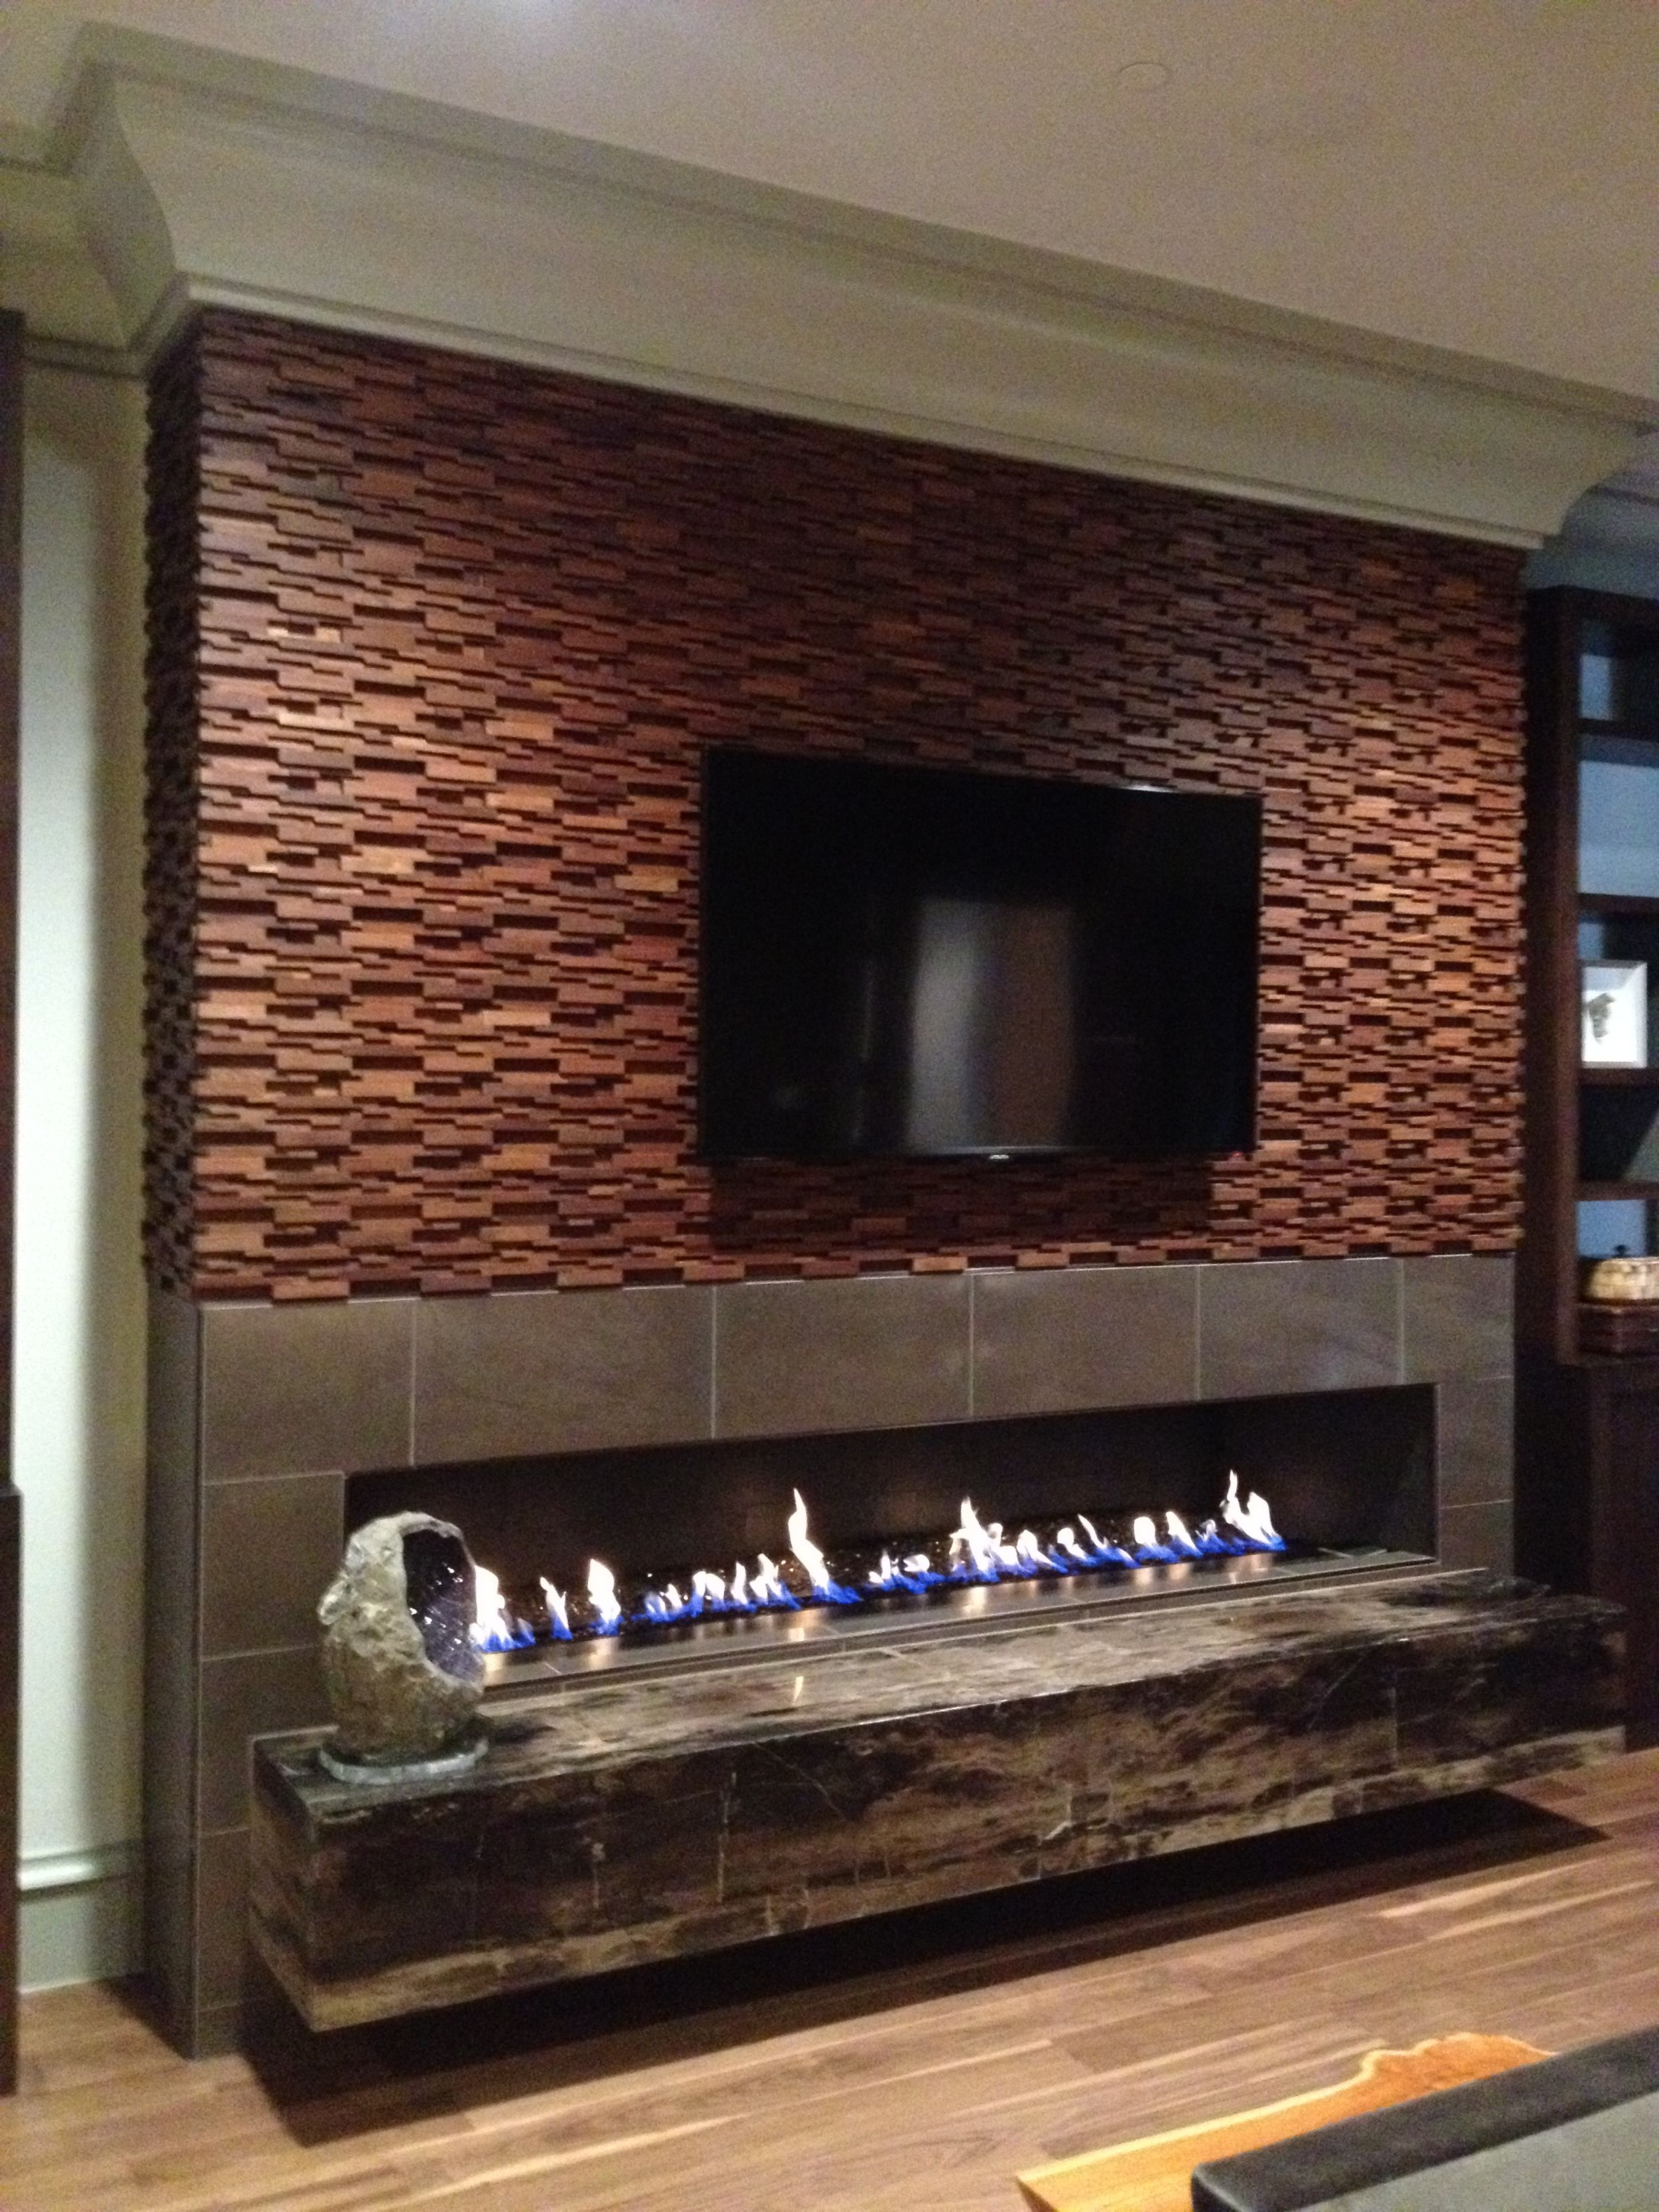 Fireplace Surround Design Ideas Spark Modern Gas Fireplace Stone Surround Style Projects To